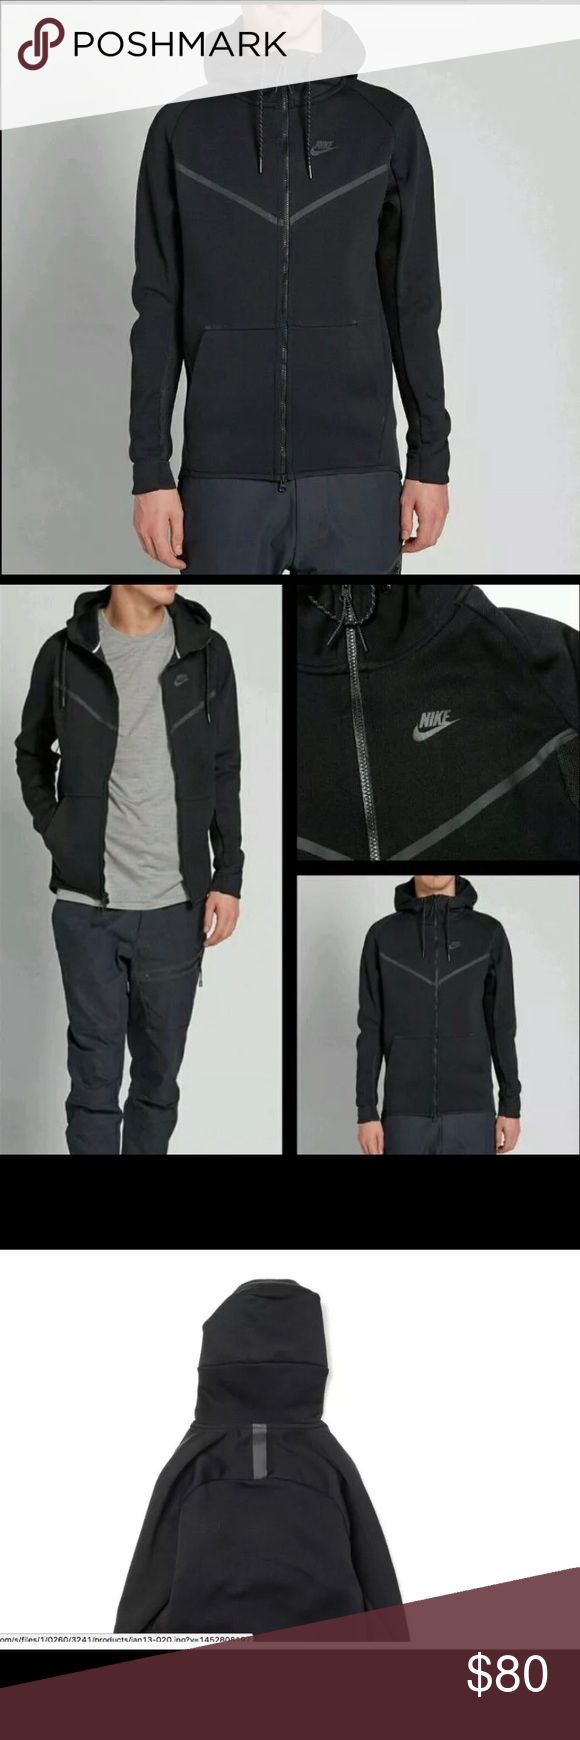 Nike windrunner black with mesh Brand new with tags Nike Jackets & Coats Lightweight & Shirt Jackets